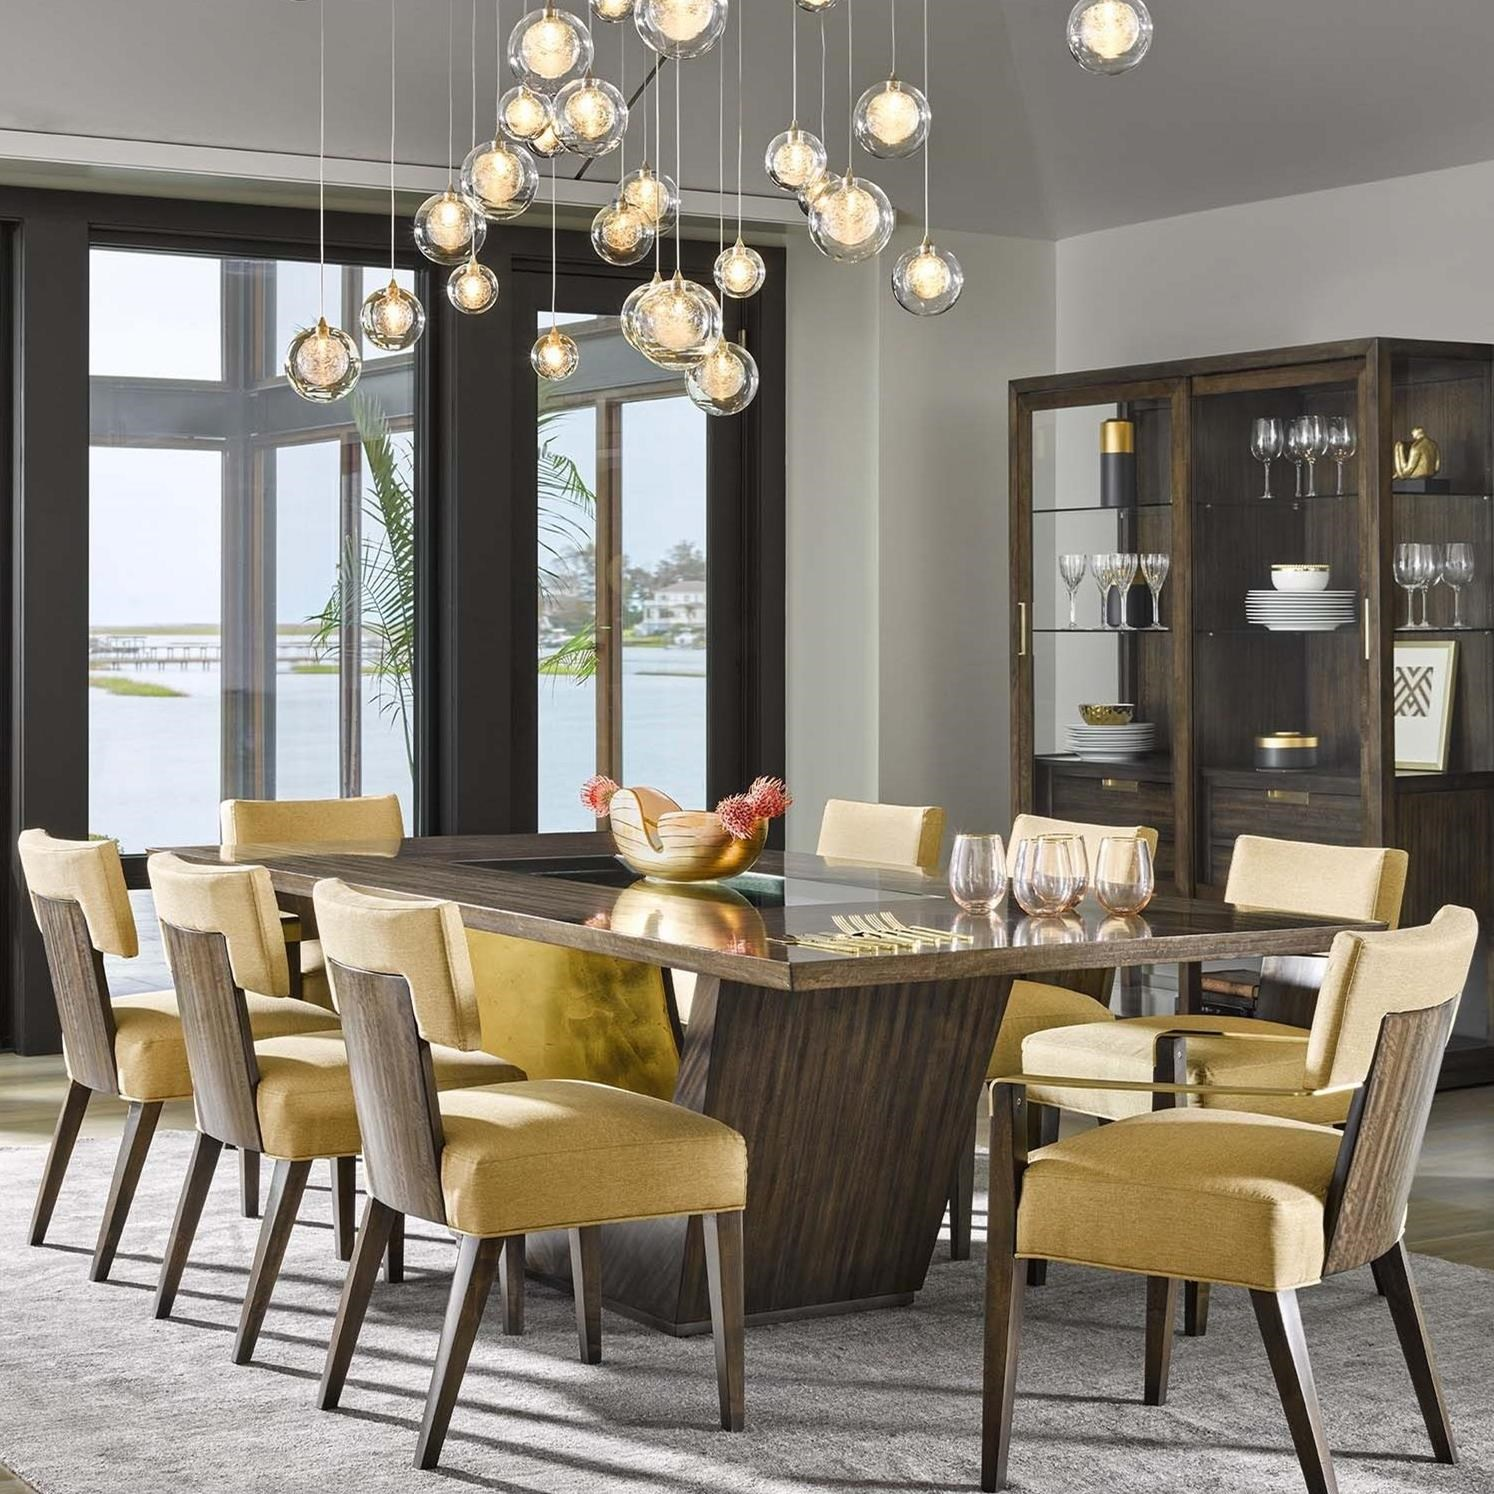 Nine Piece Table and Chair Set